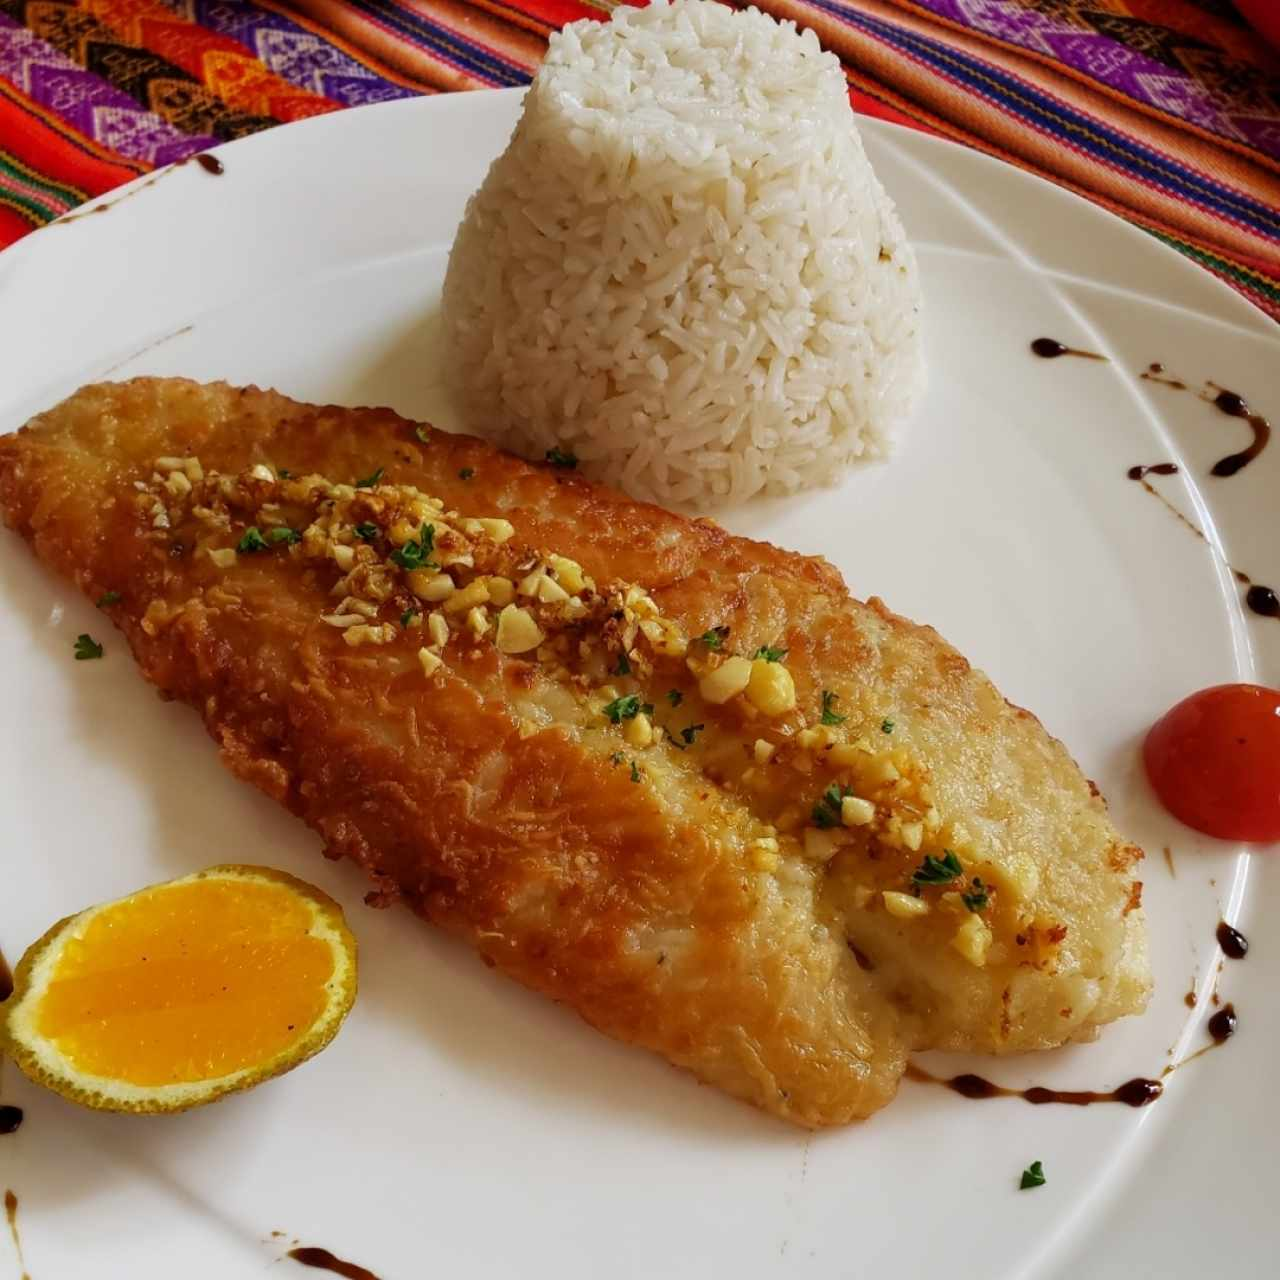 corvina al ajillo con arroz